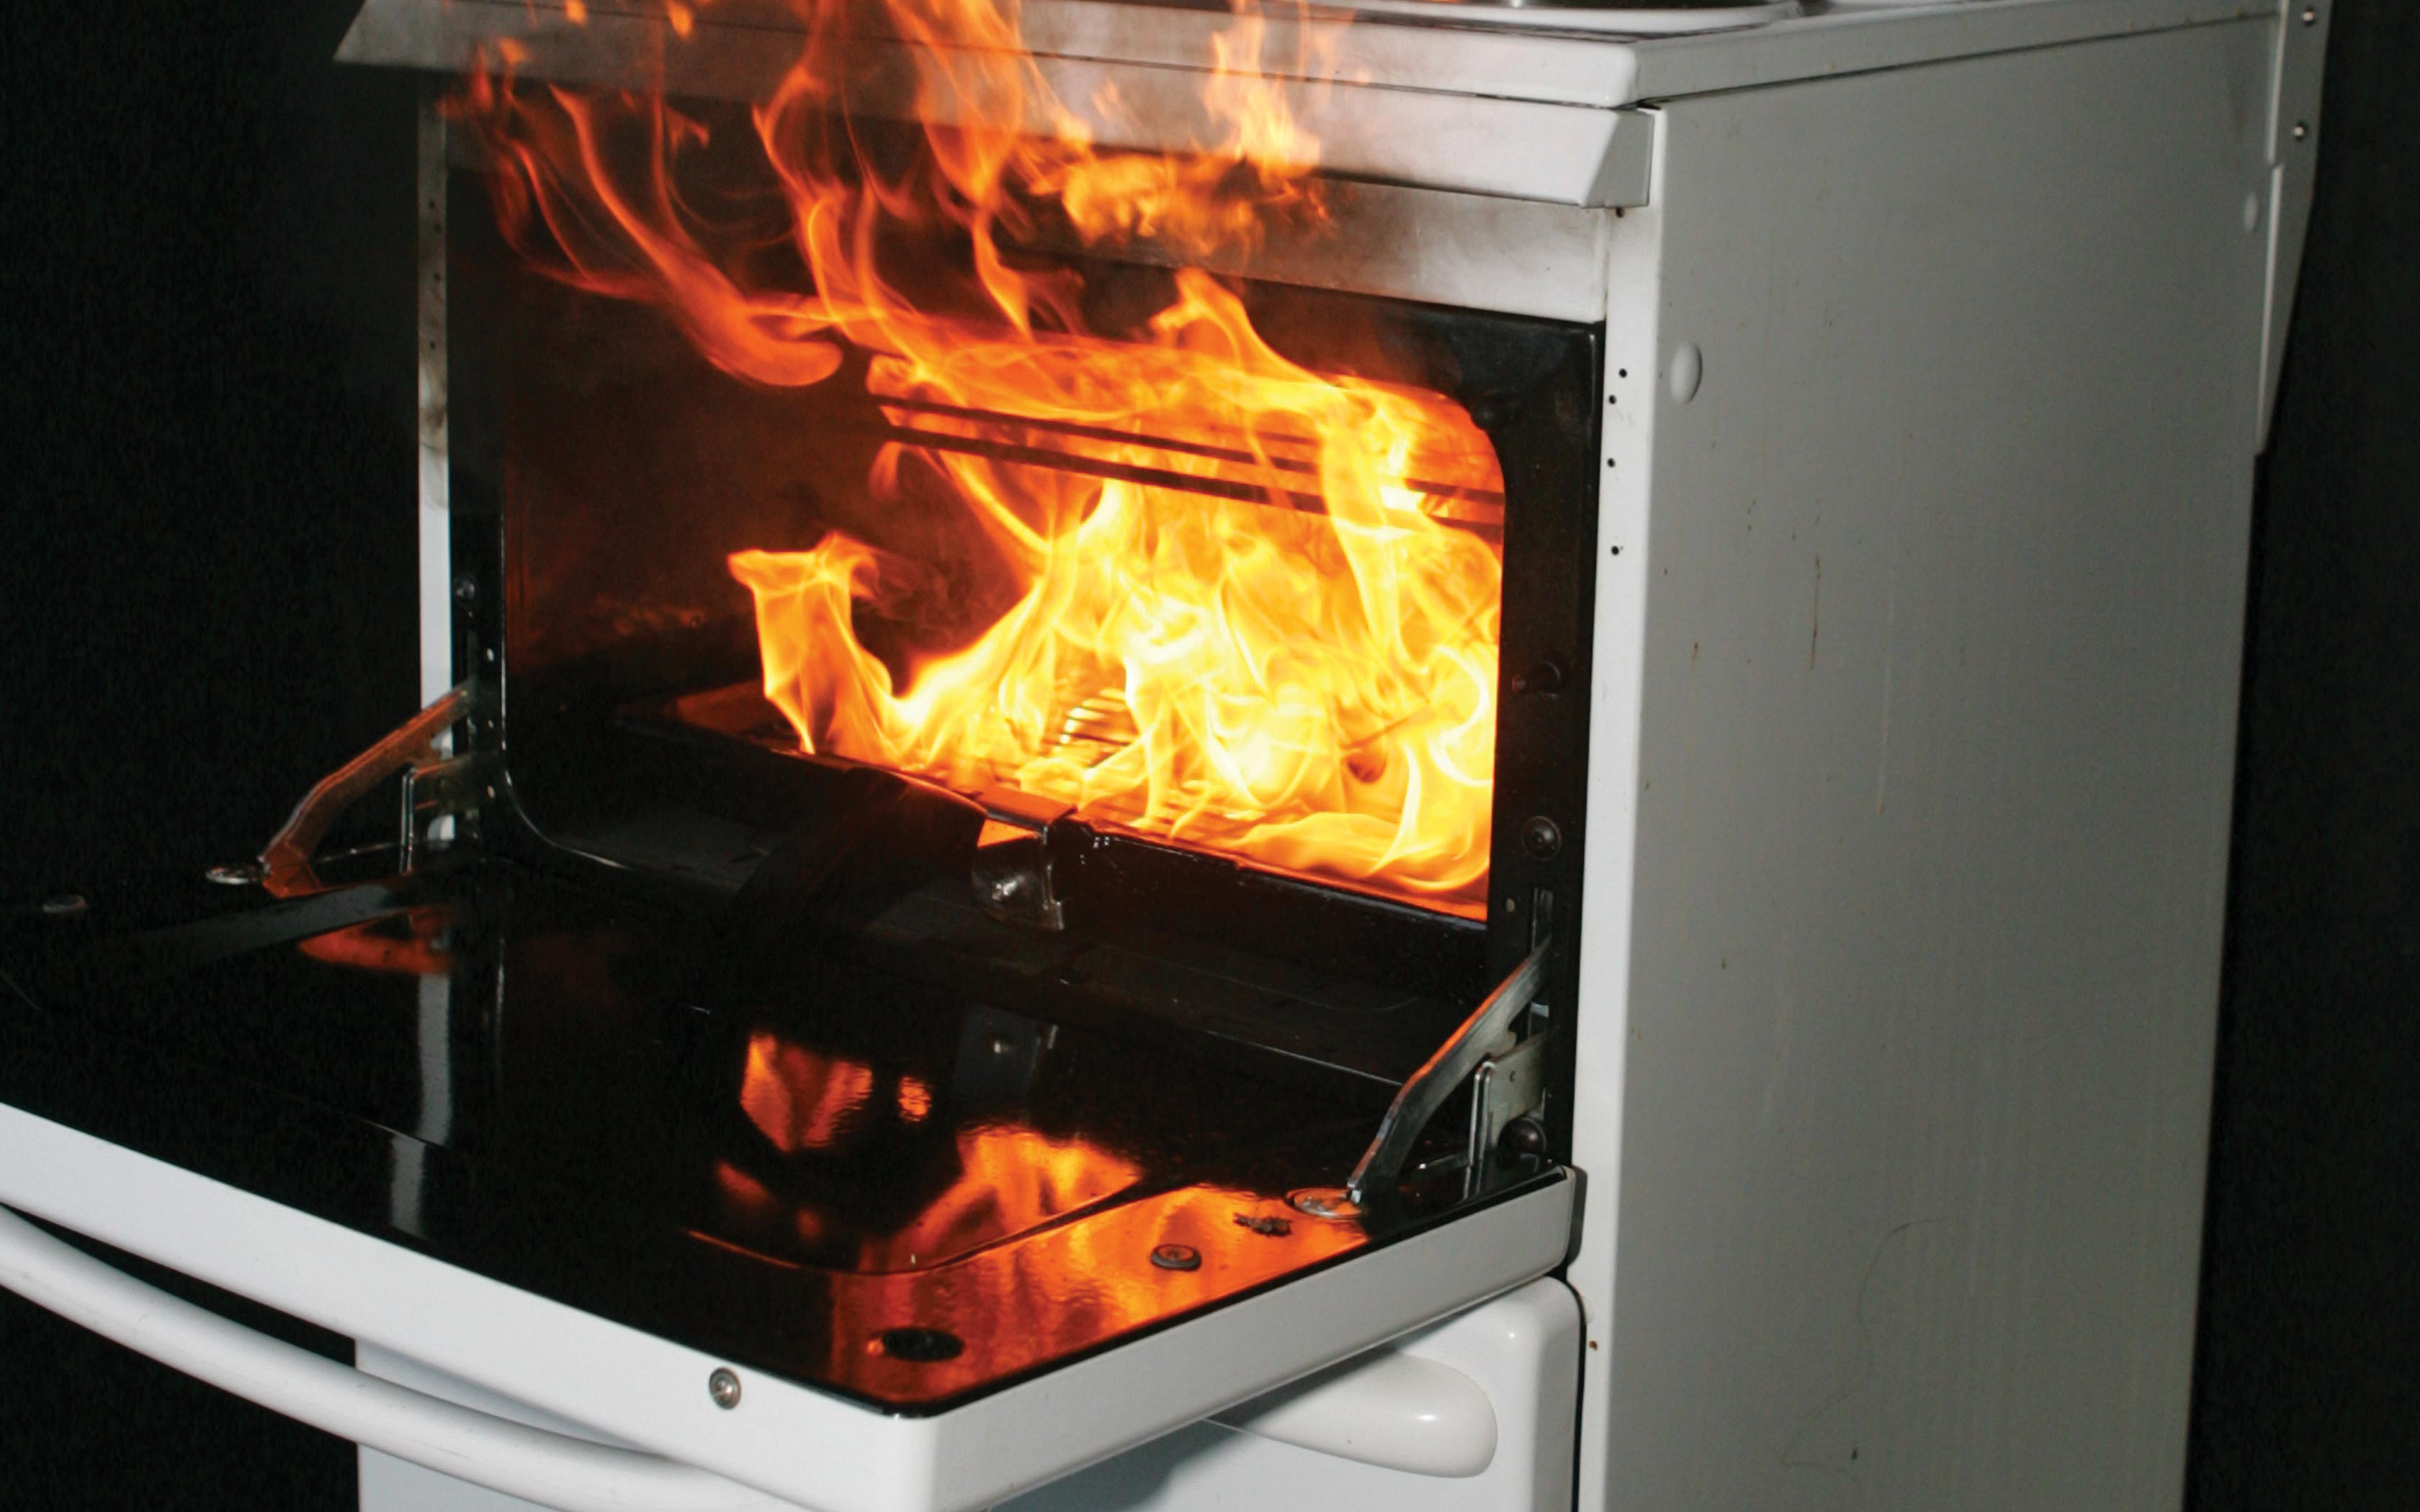 10 Ways to Protect your Home from Fire